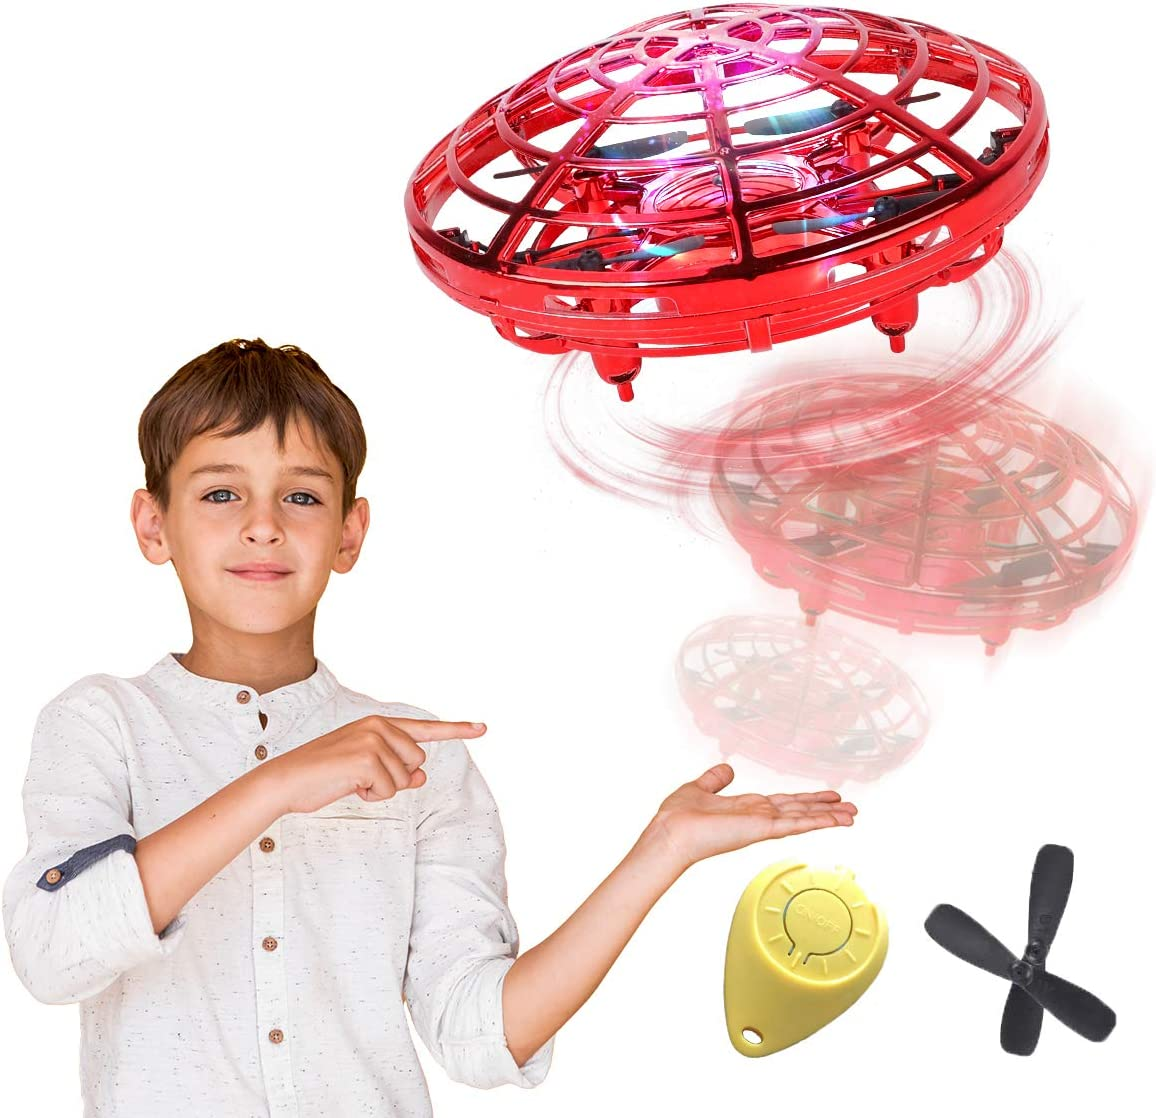 98K Hand Operated Drones for Kids or Adults, Light Up Joy Flying Ball Drone, Helicopter Mini Drone, Easy Indoor Small Flying Toys for Boys or Girls Red